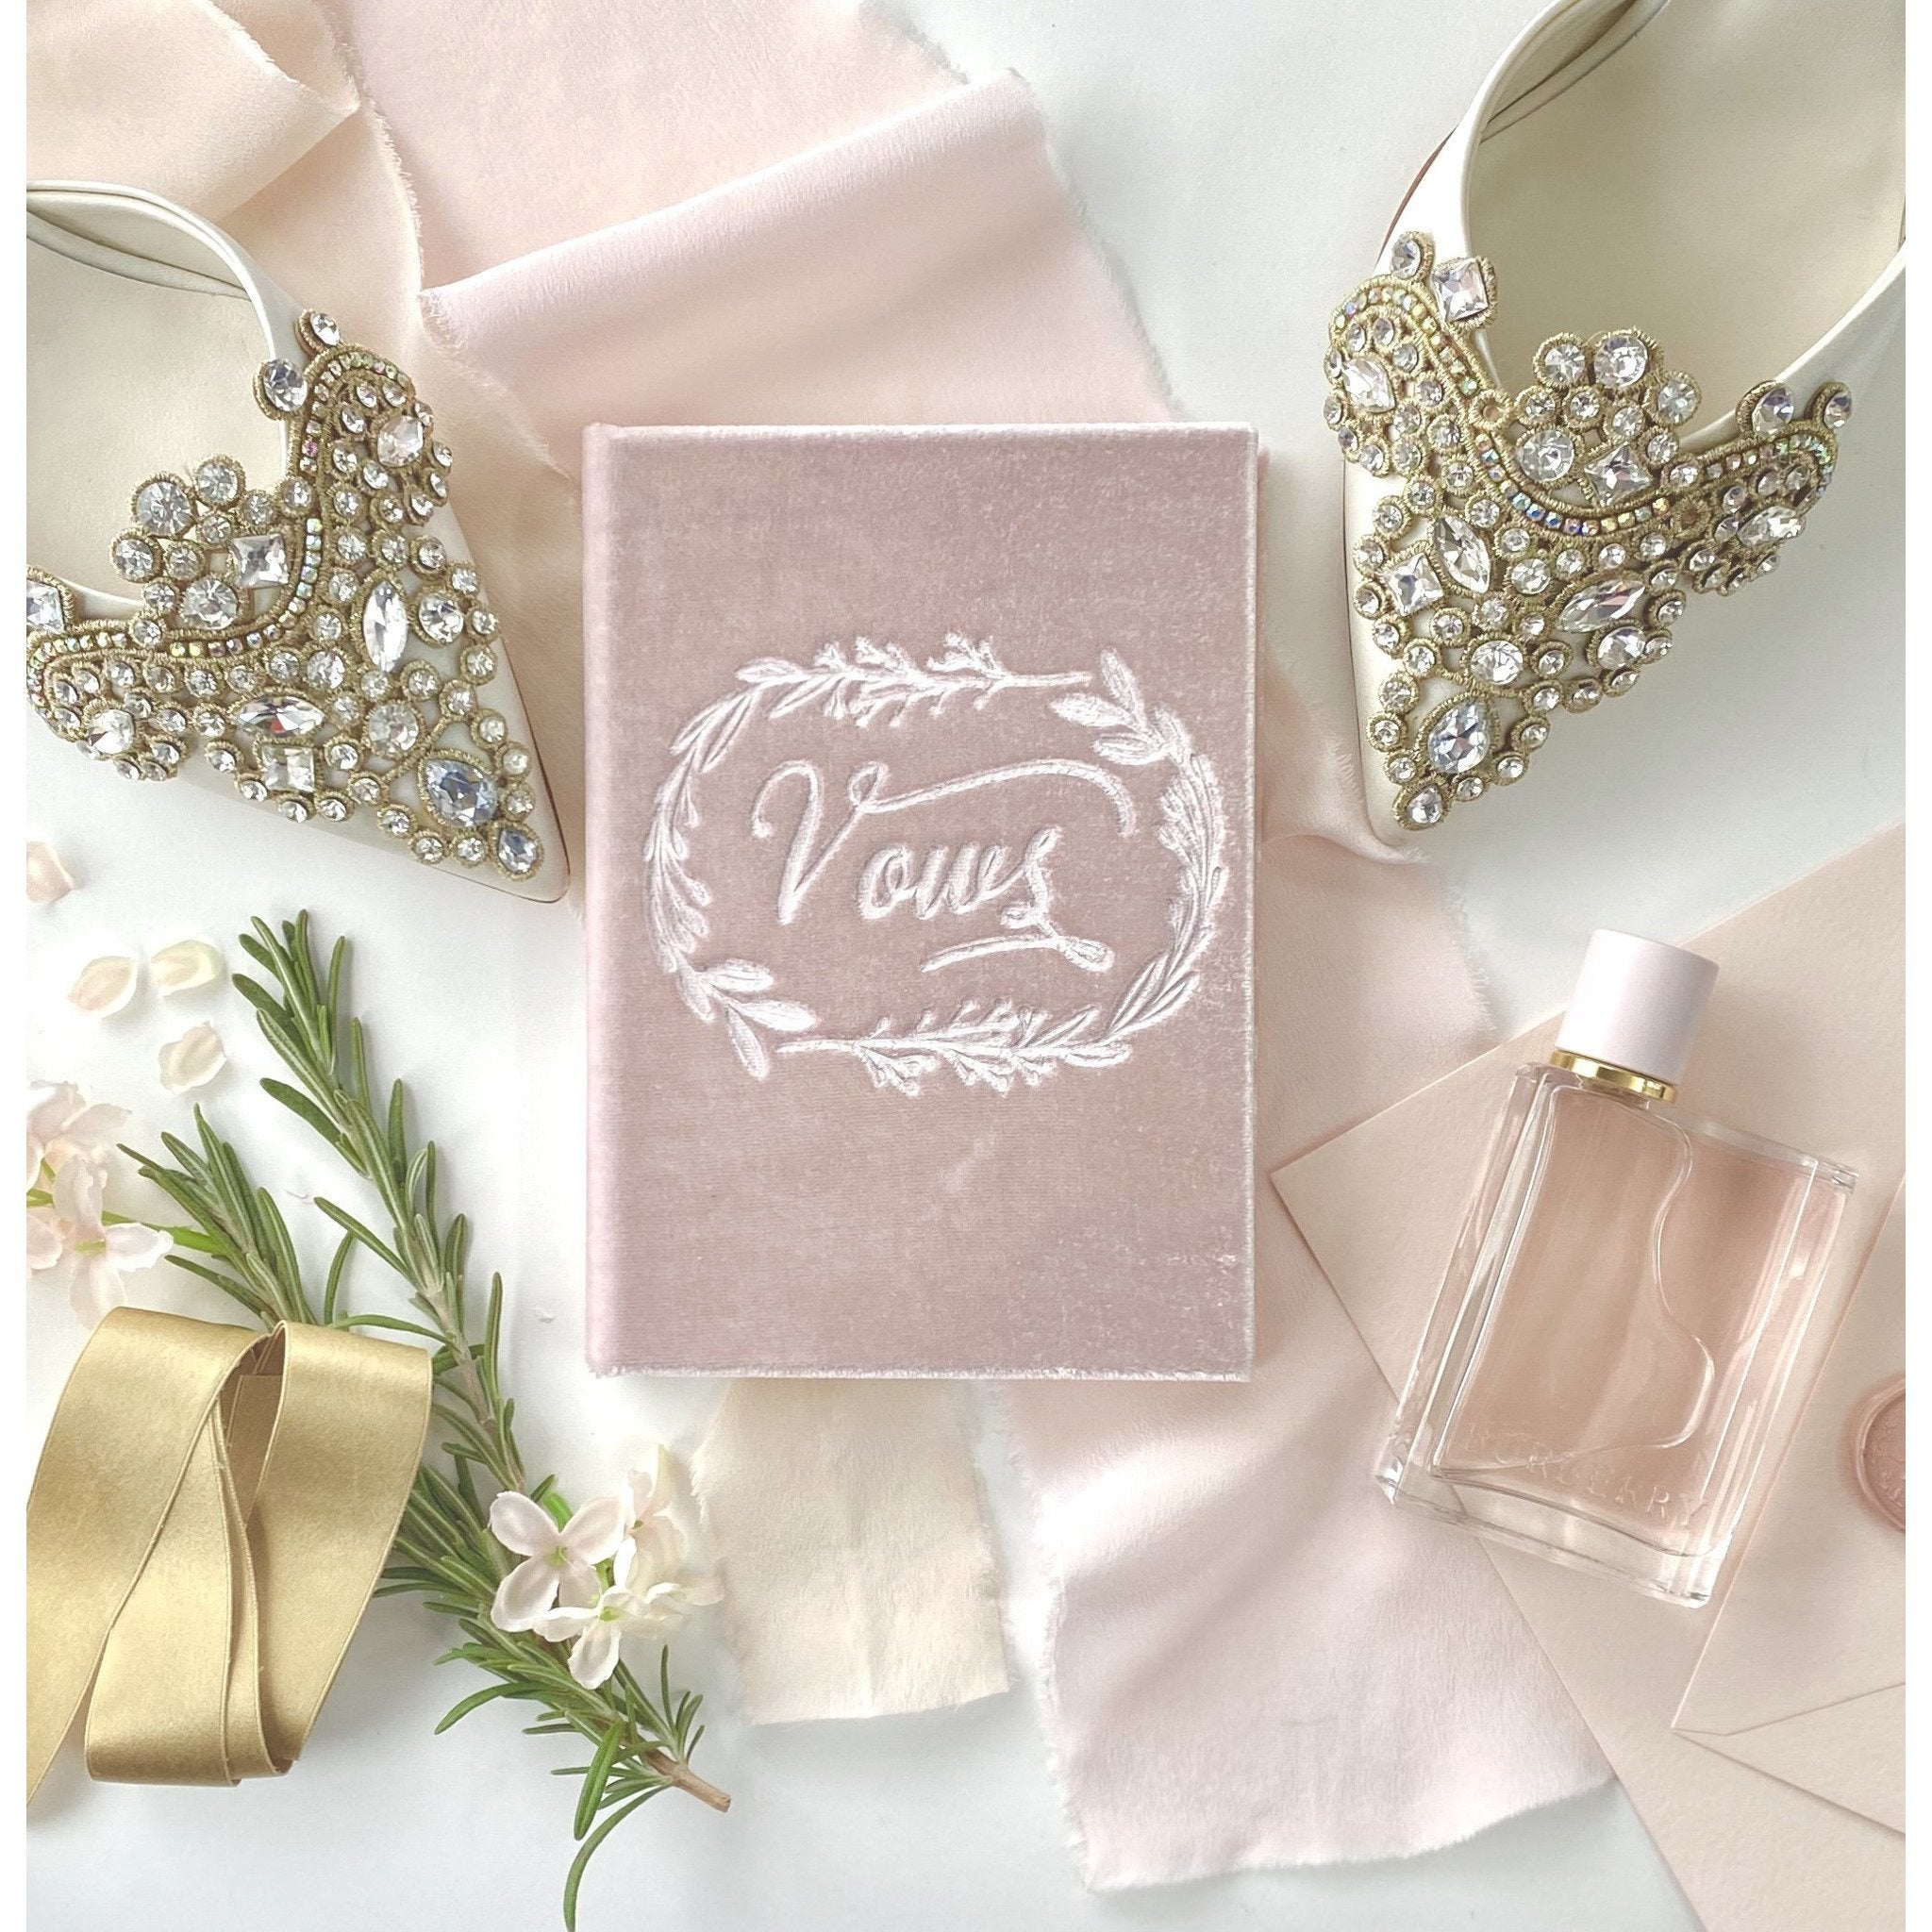 Petite Soft Velvet-Covered Vows Book for Weddings with Ribbon Bookmark - The First Snow